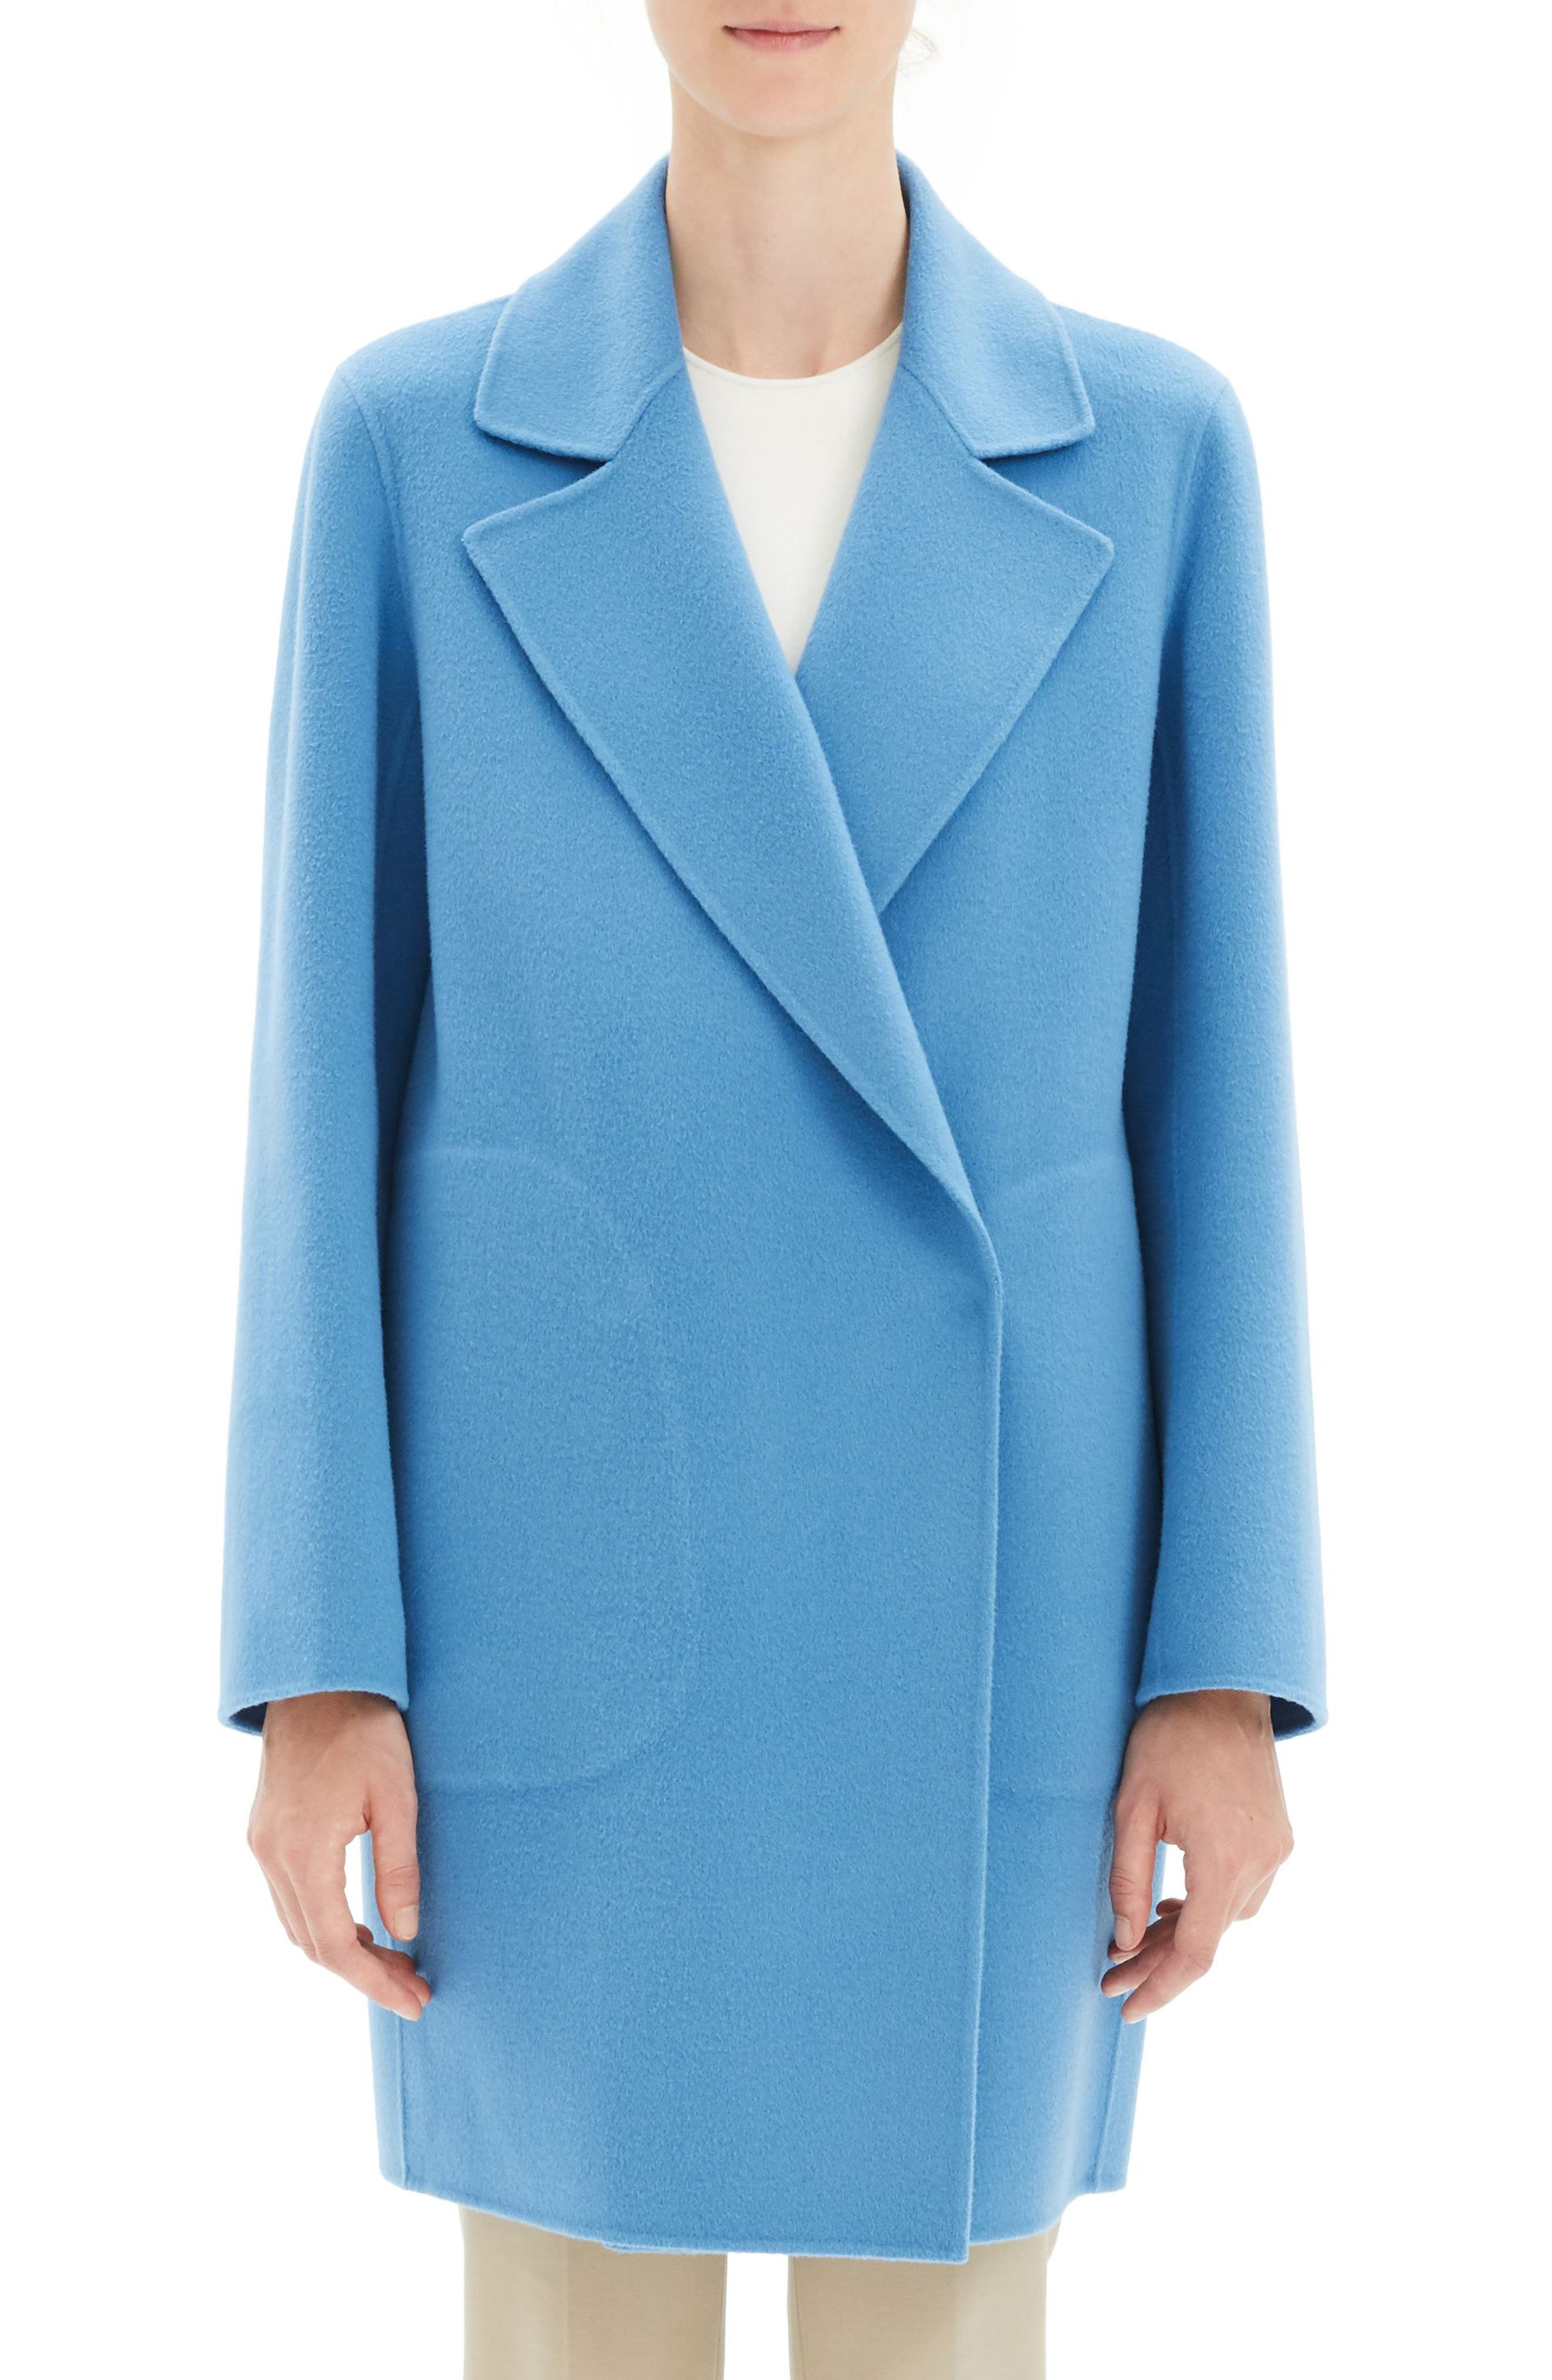 THEORY, Wool & Cashmere Boy Coat, Main thumbnail 1, color, 488